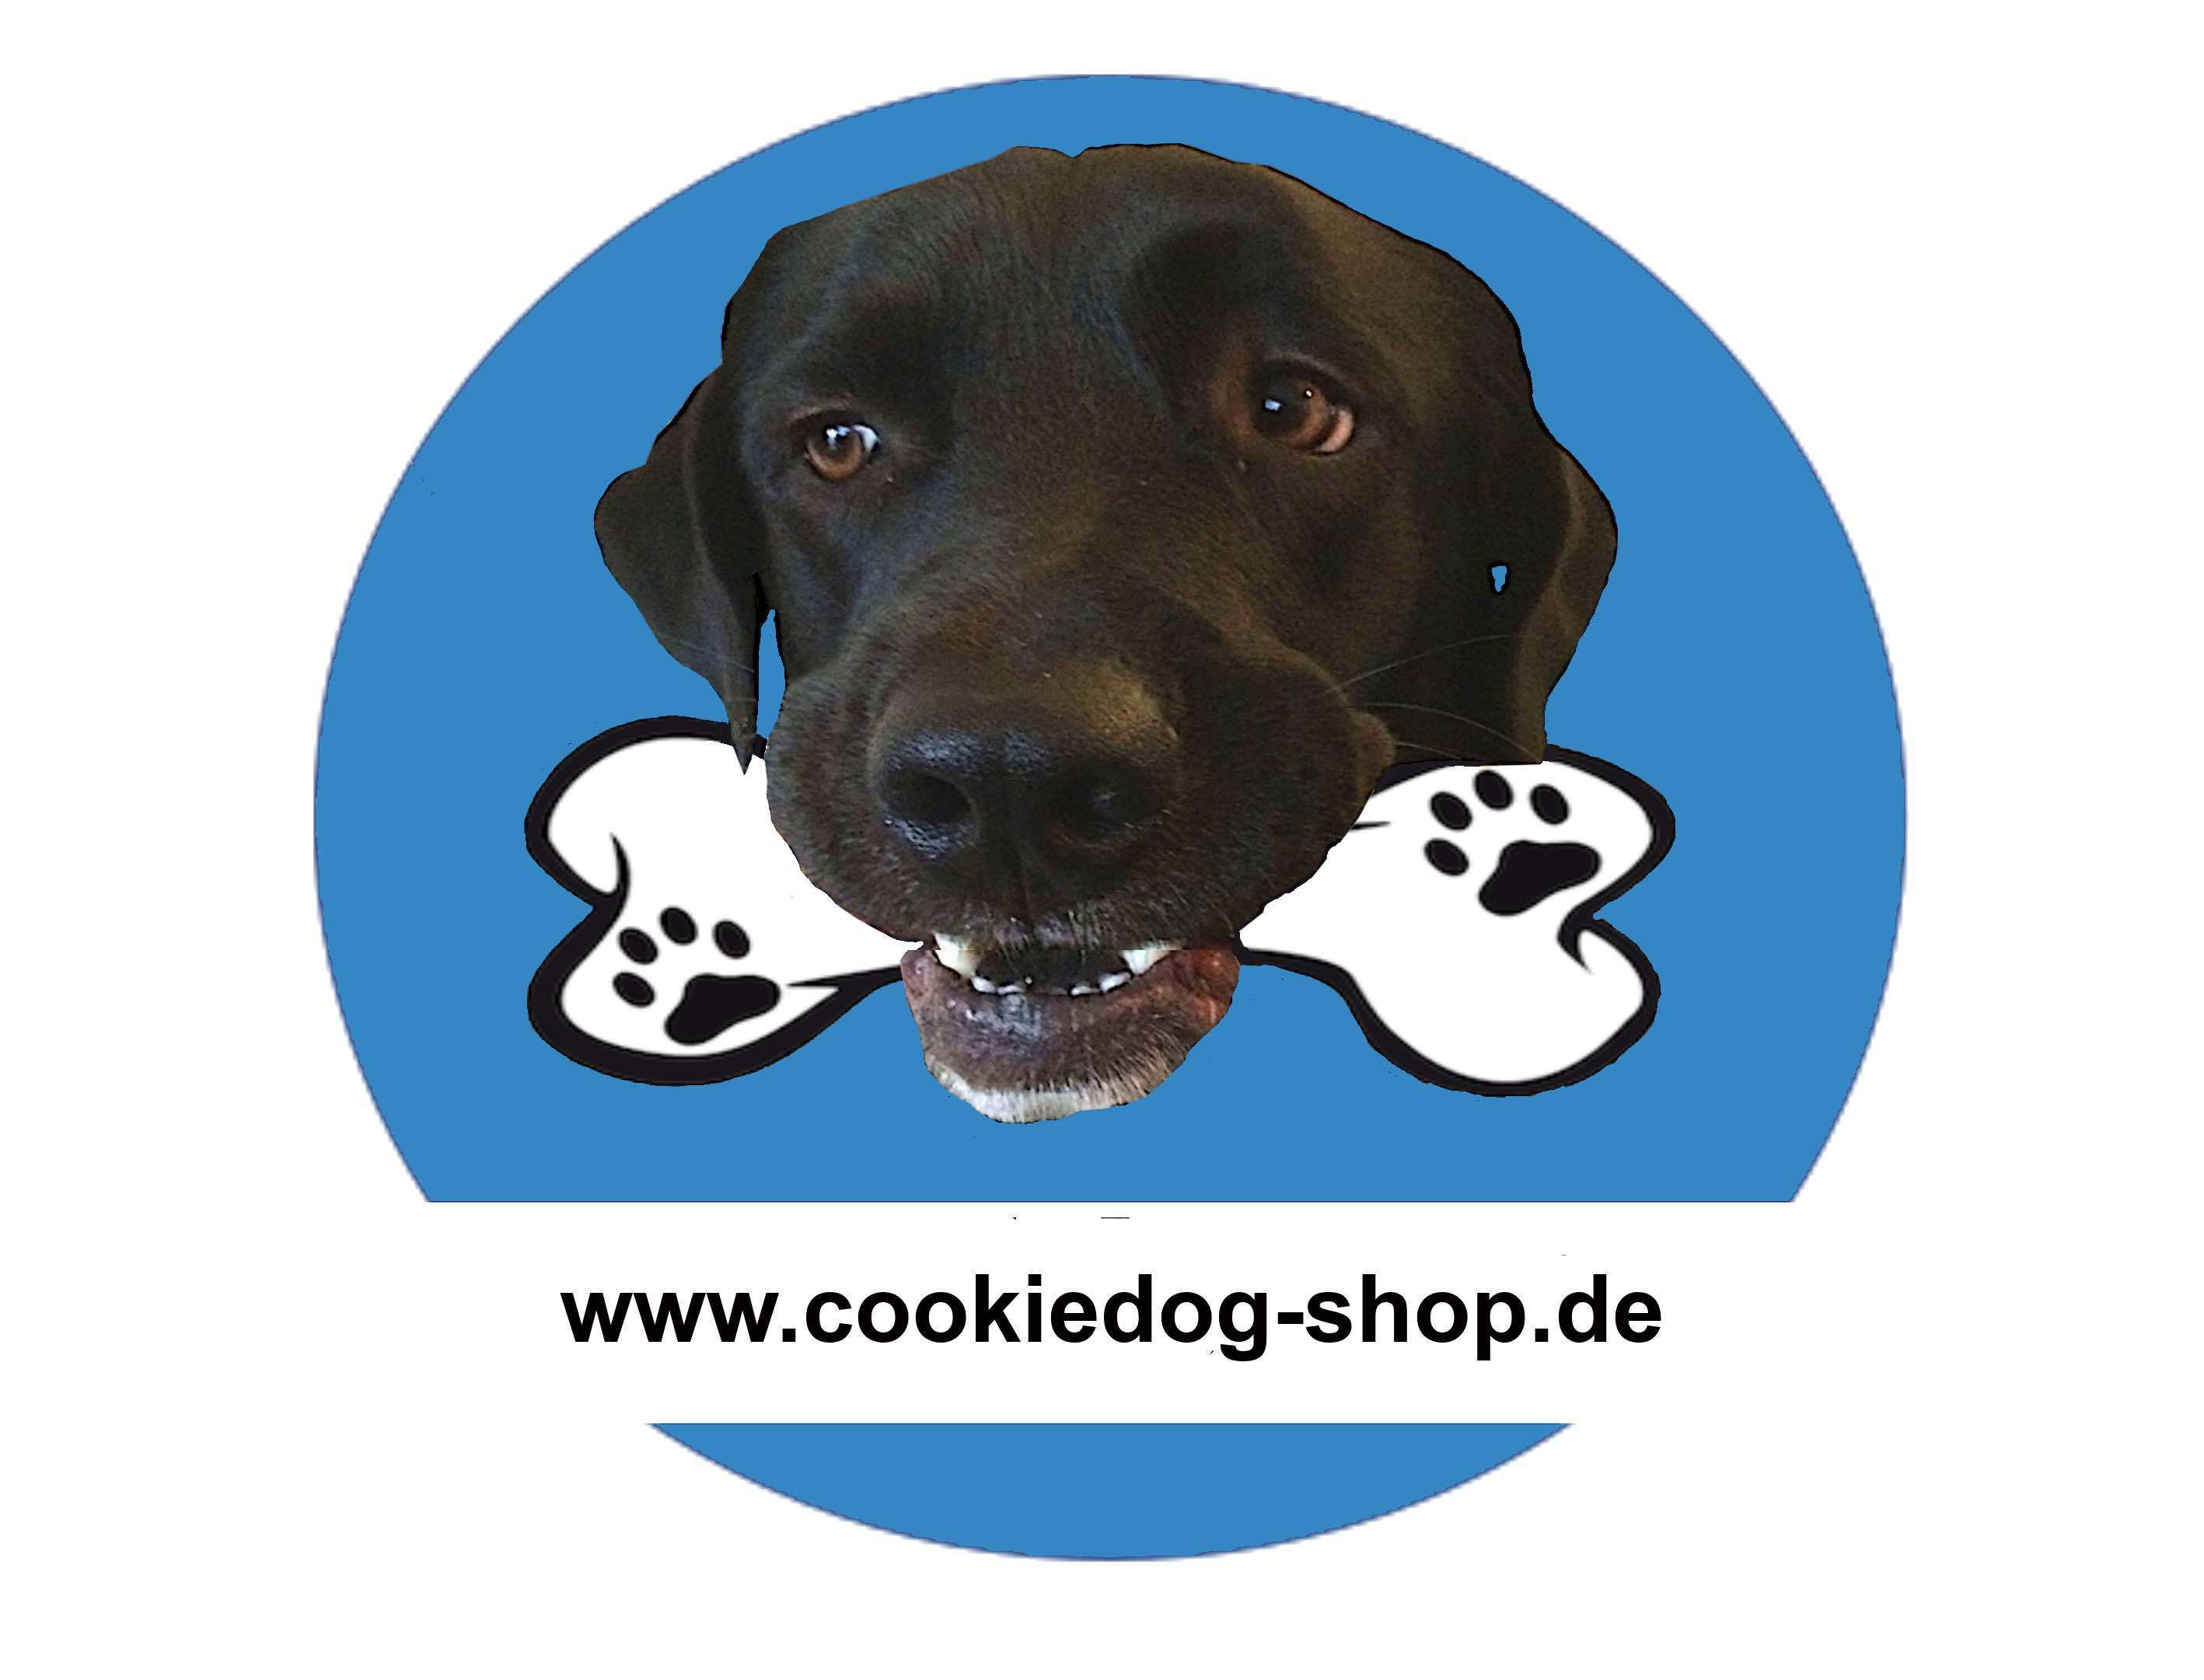 CookieDog-Shop